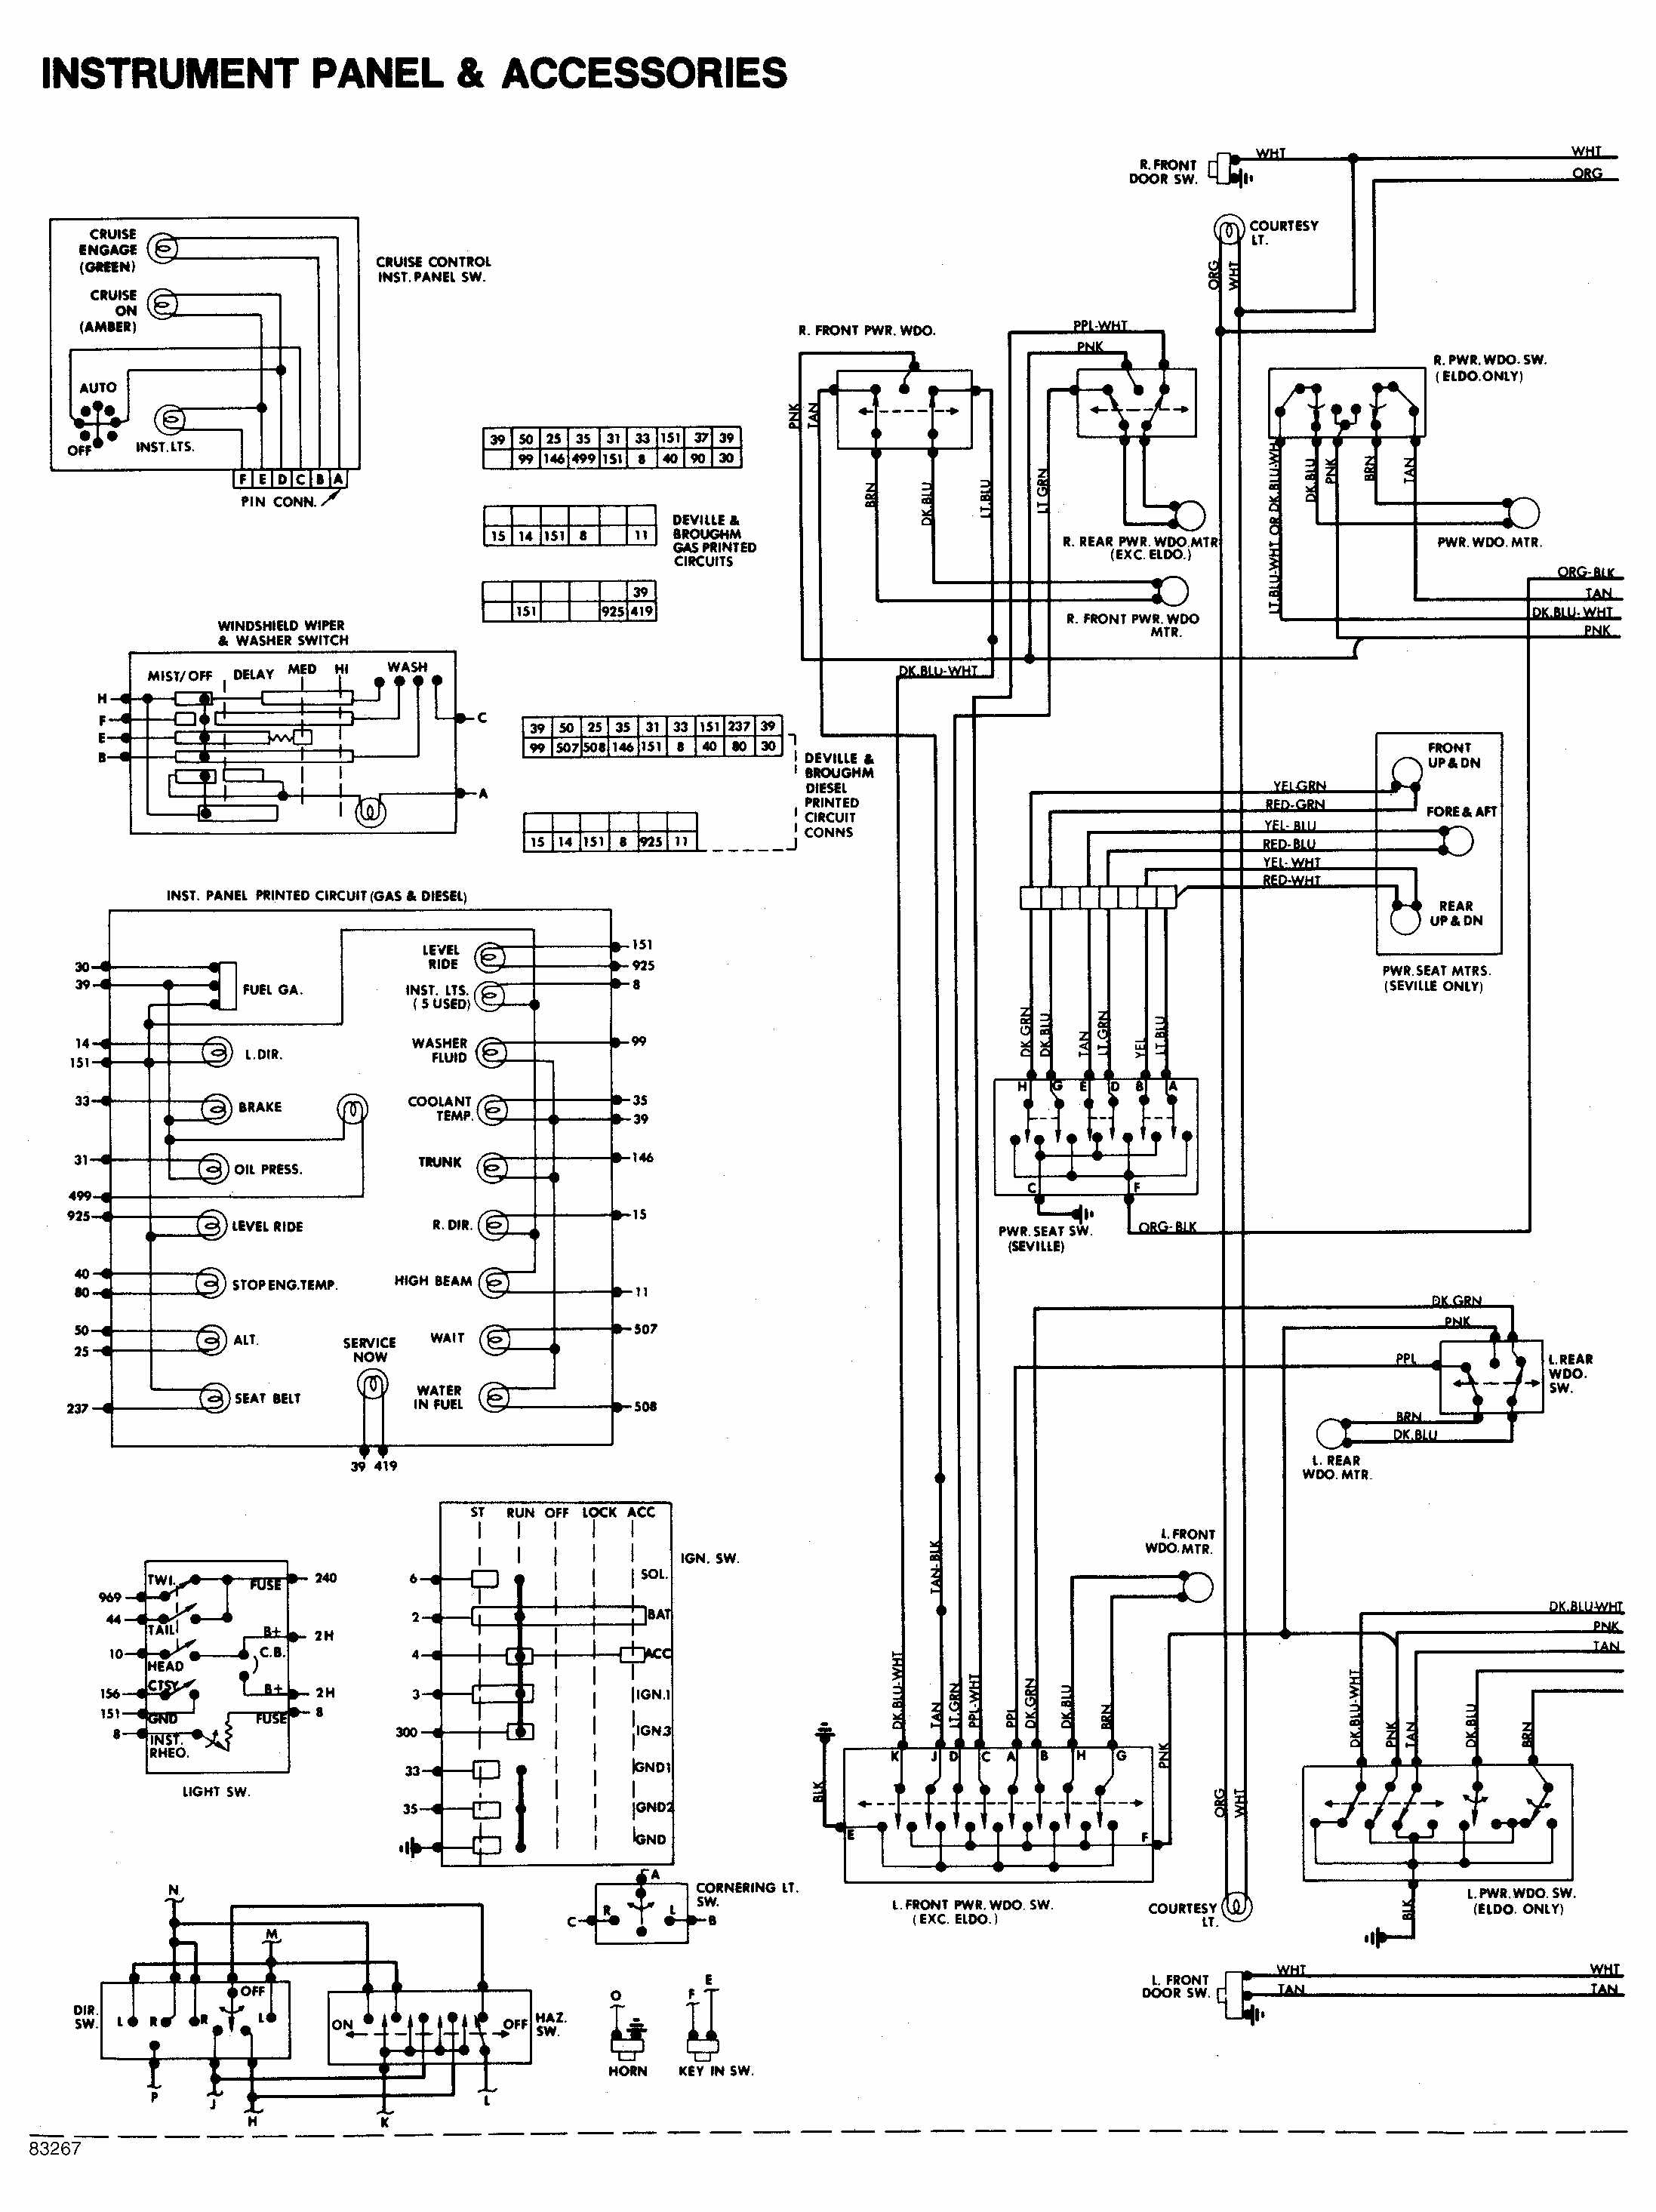 1997 Silverado Airbag Wiring Schematic Diagram Will Be A 1992 K1500 Chevy Diagrams Rh Wizard Com 2002 Distribution 2003